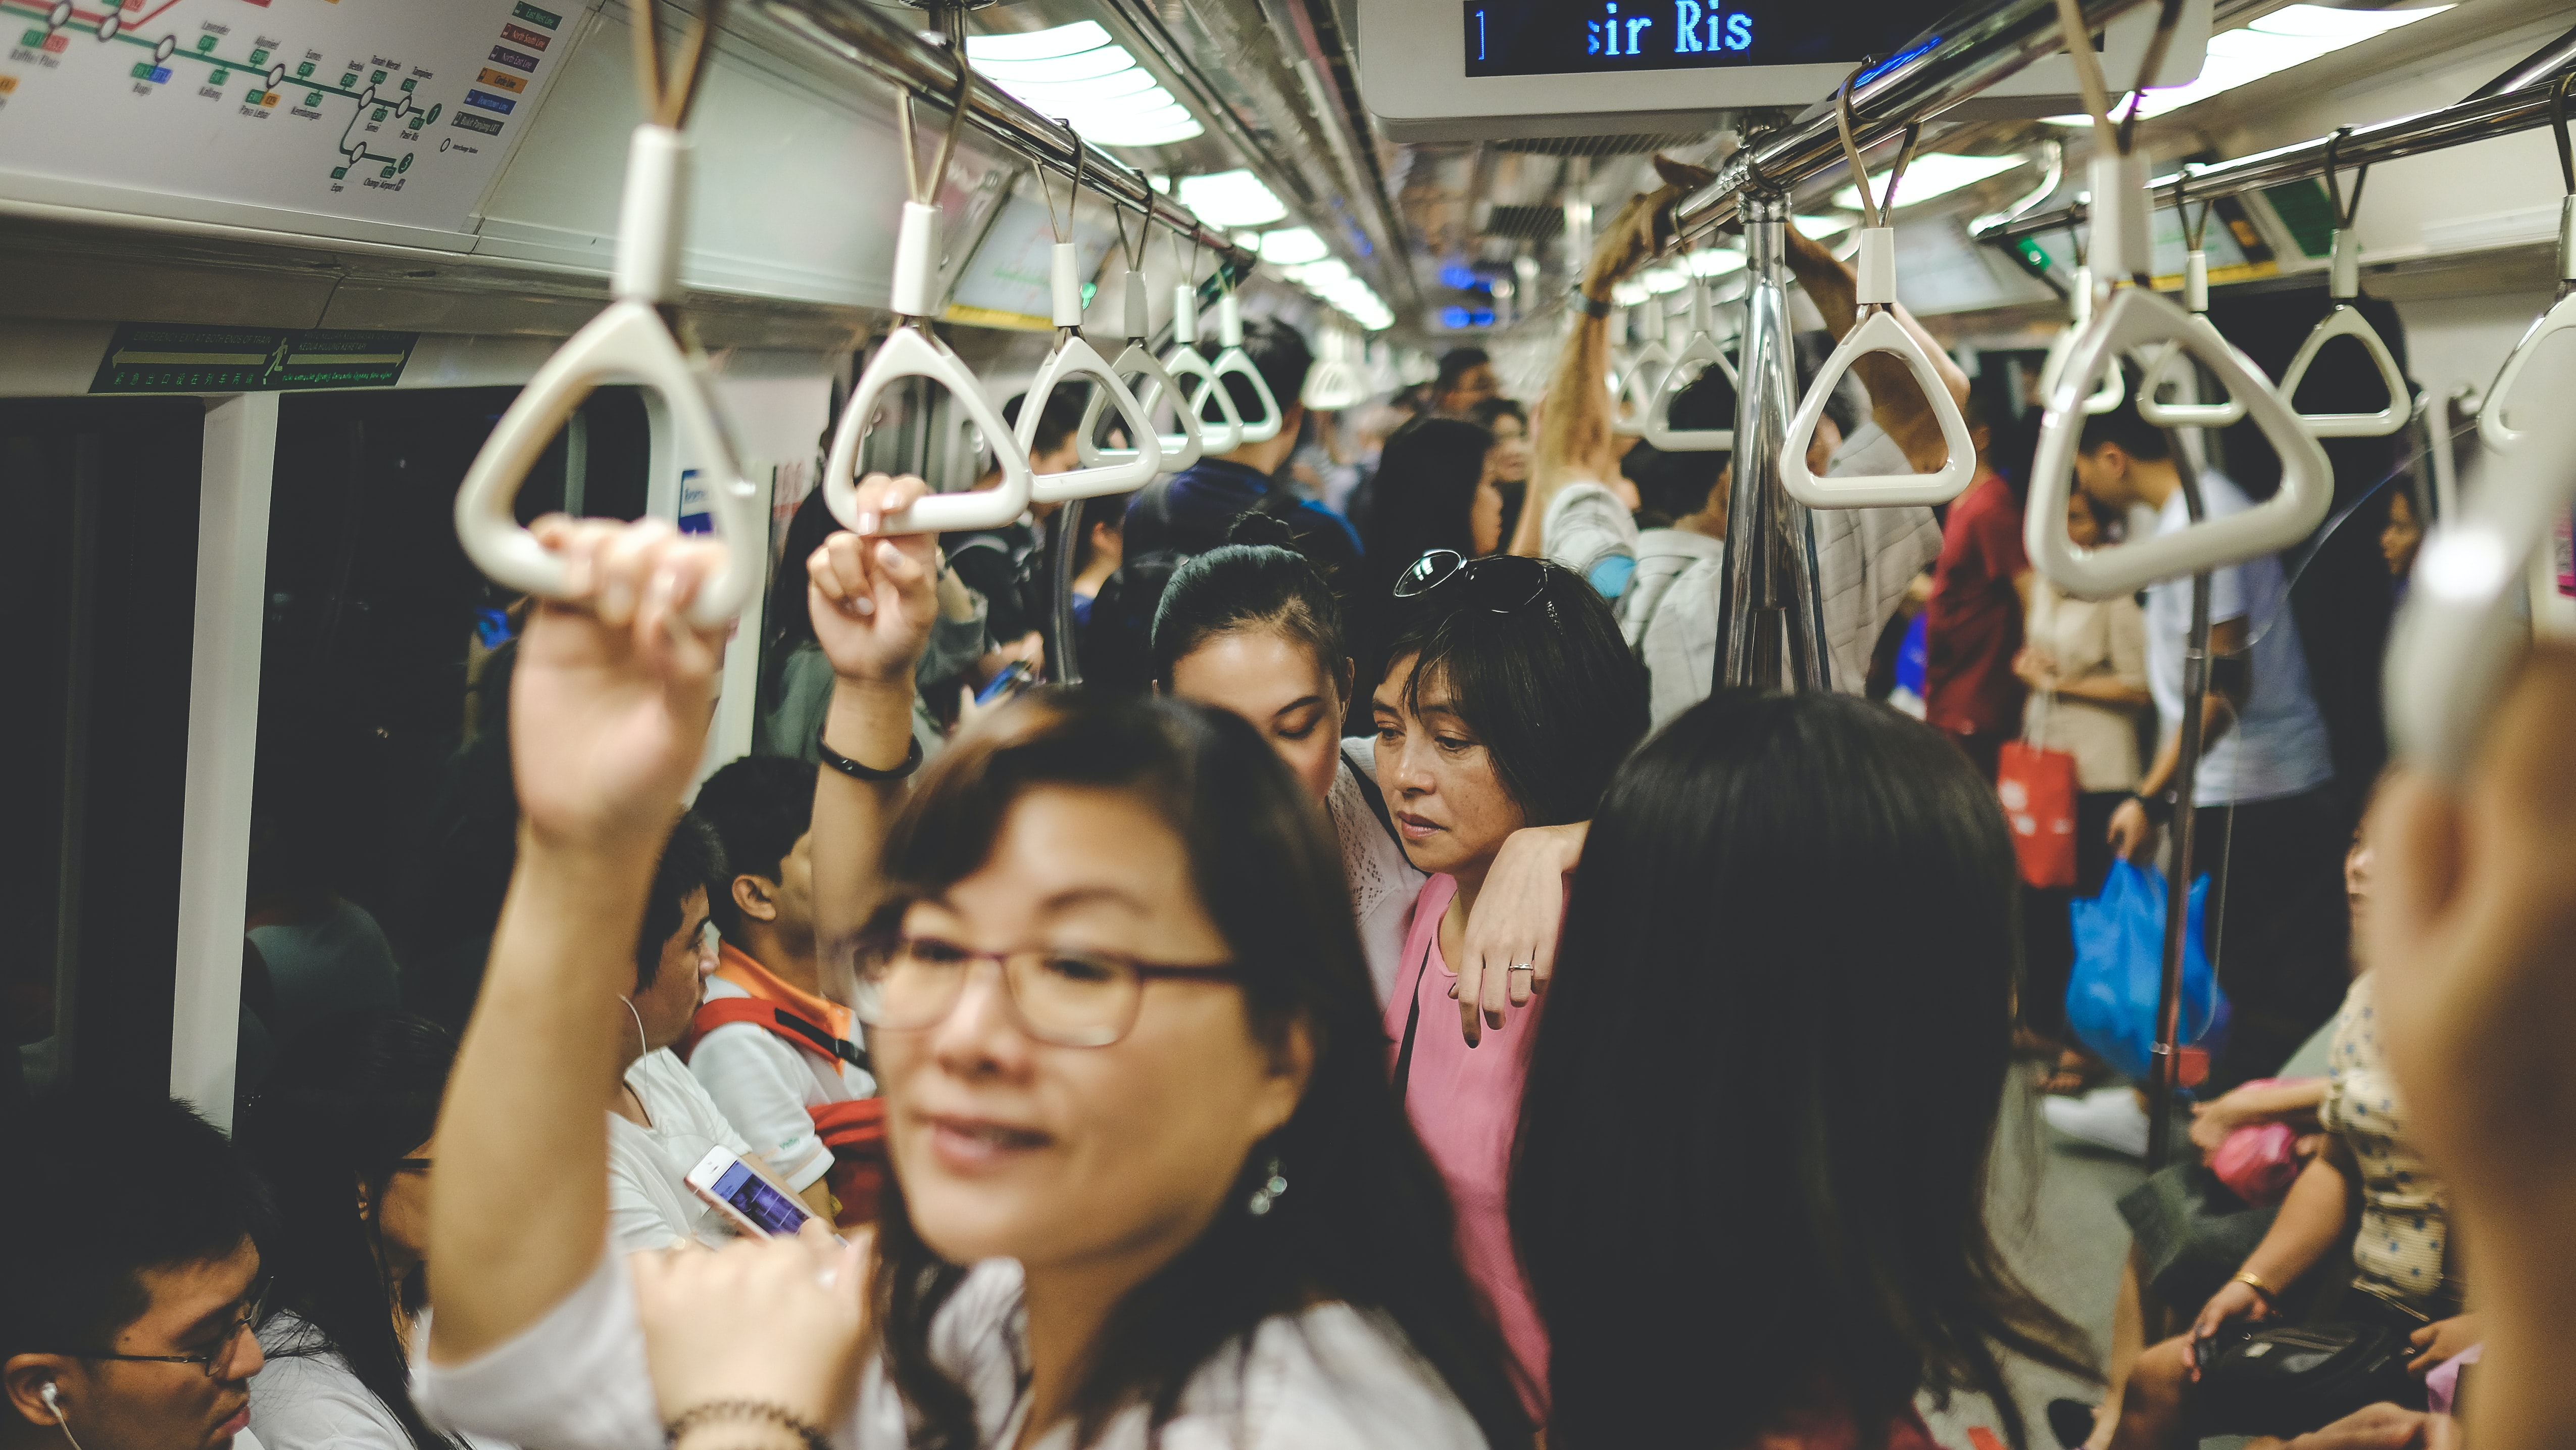 Passengers on a crowded subway train